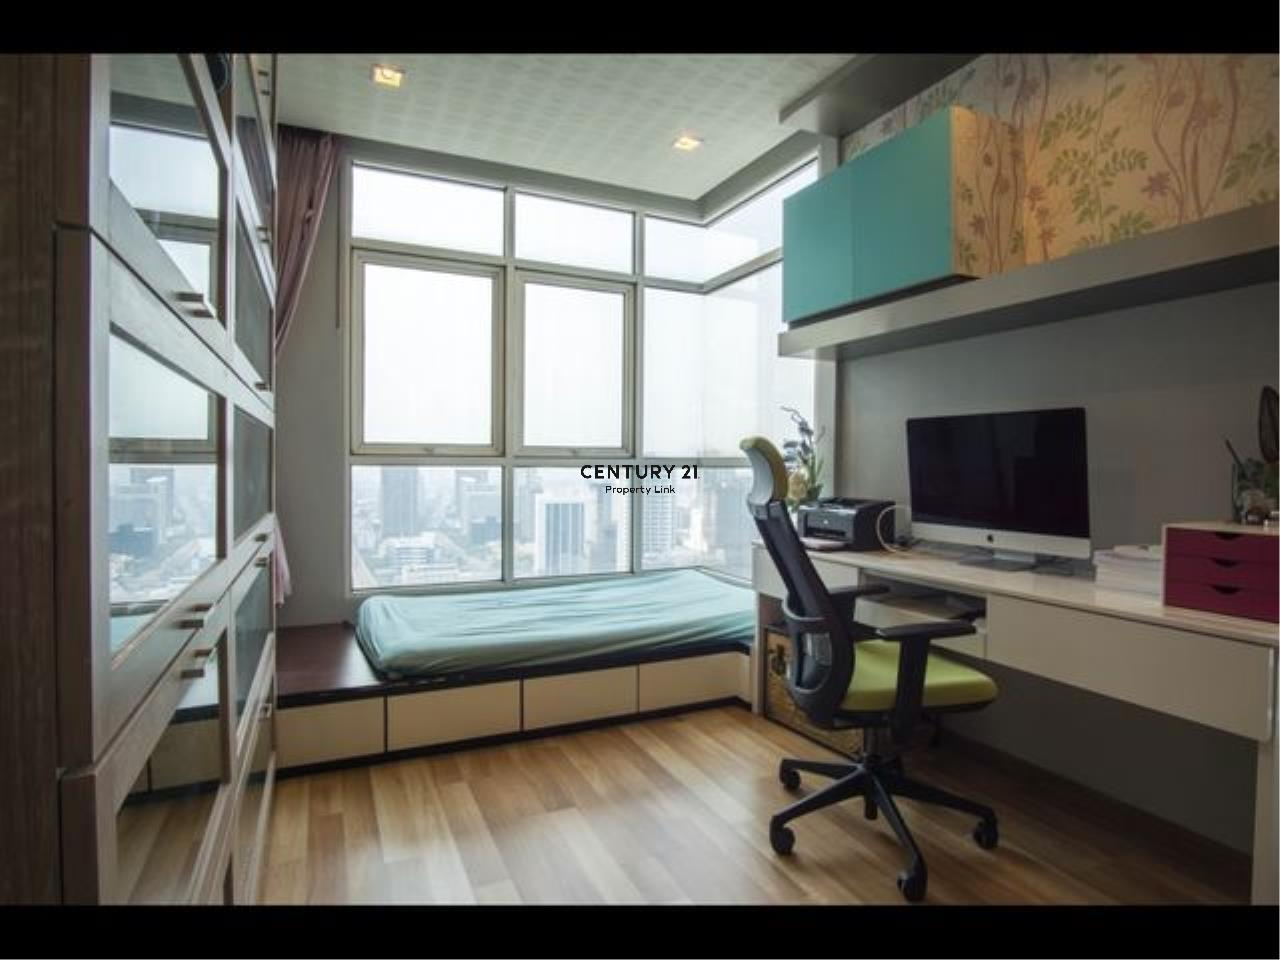 Century21 Property Link Agency's 39-CC-61435 Ideo Verve Ratchaprarop Room For Sale 2 Bedroom Nearby @ Ratchaprarop Airport Rail Link BTS Phaya Thai Sale price 9.7 MB.   4